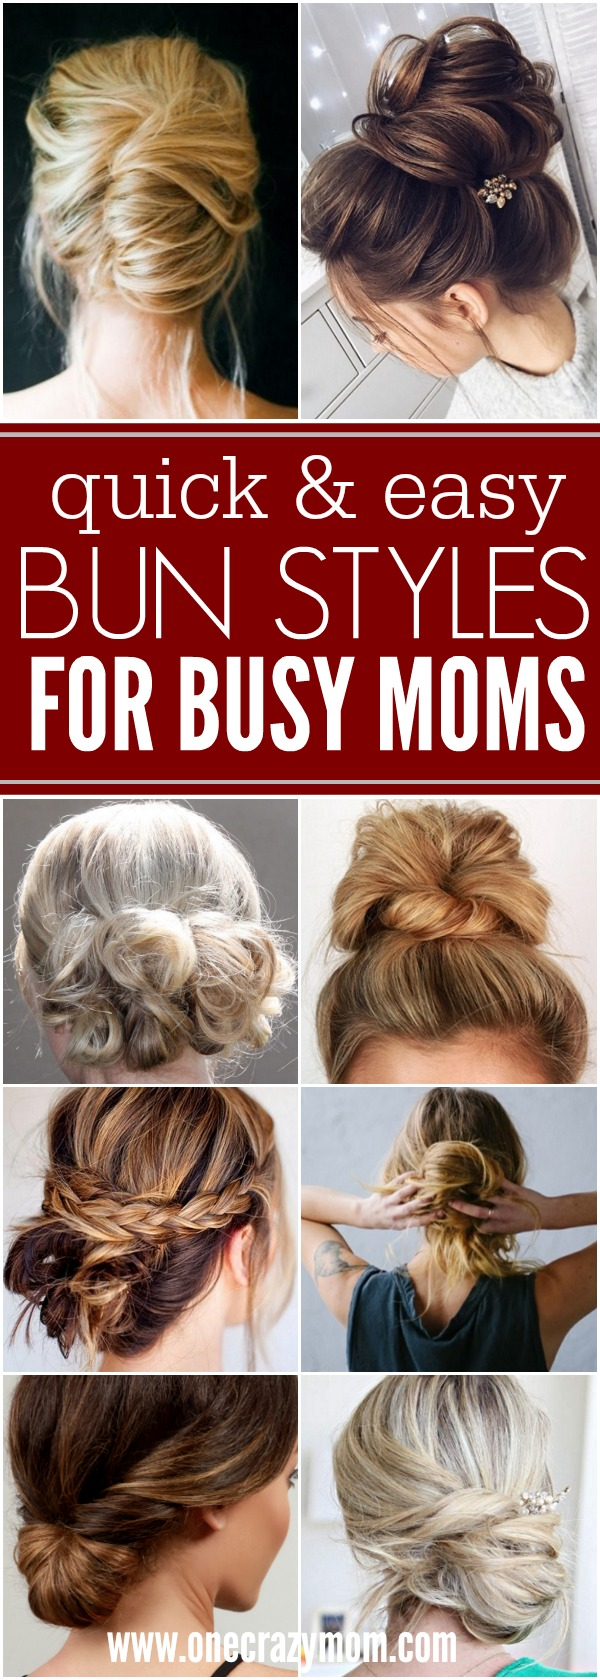 You will love these quick and easy cute bun hairstyles for busy moms. Find 25 messy bun hairstyles that take very little time. Cute buns for Mom. Try these cute messy buns that you will love!